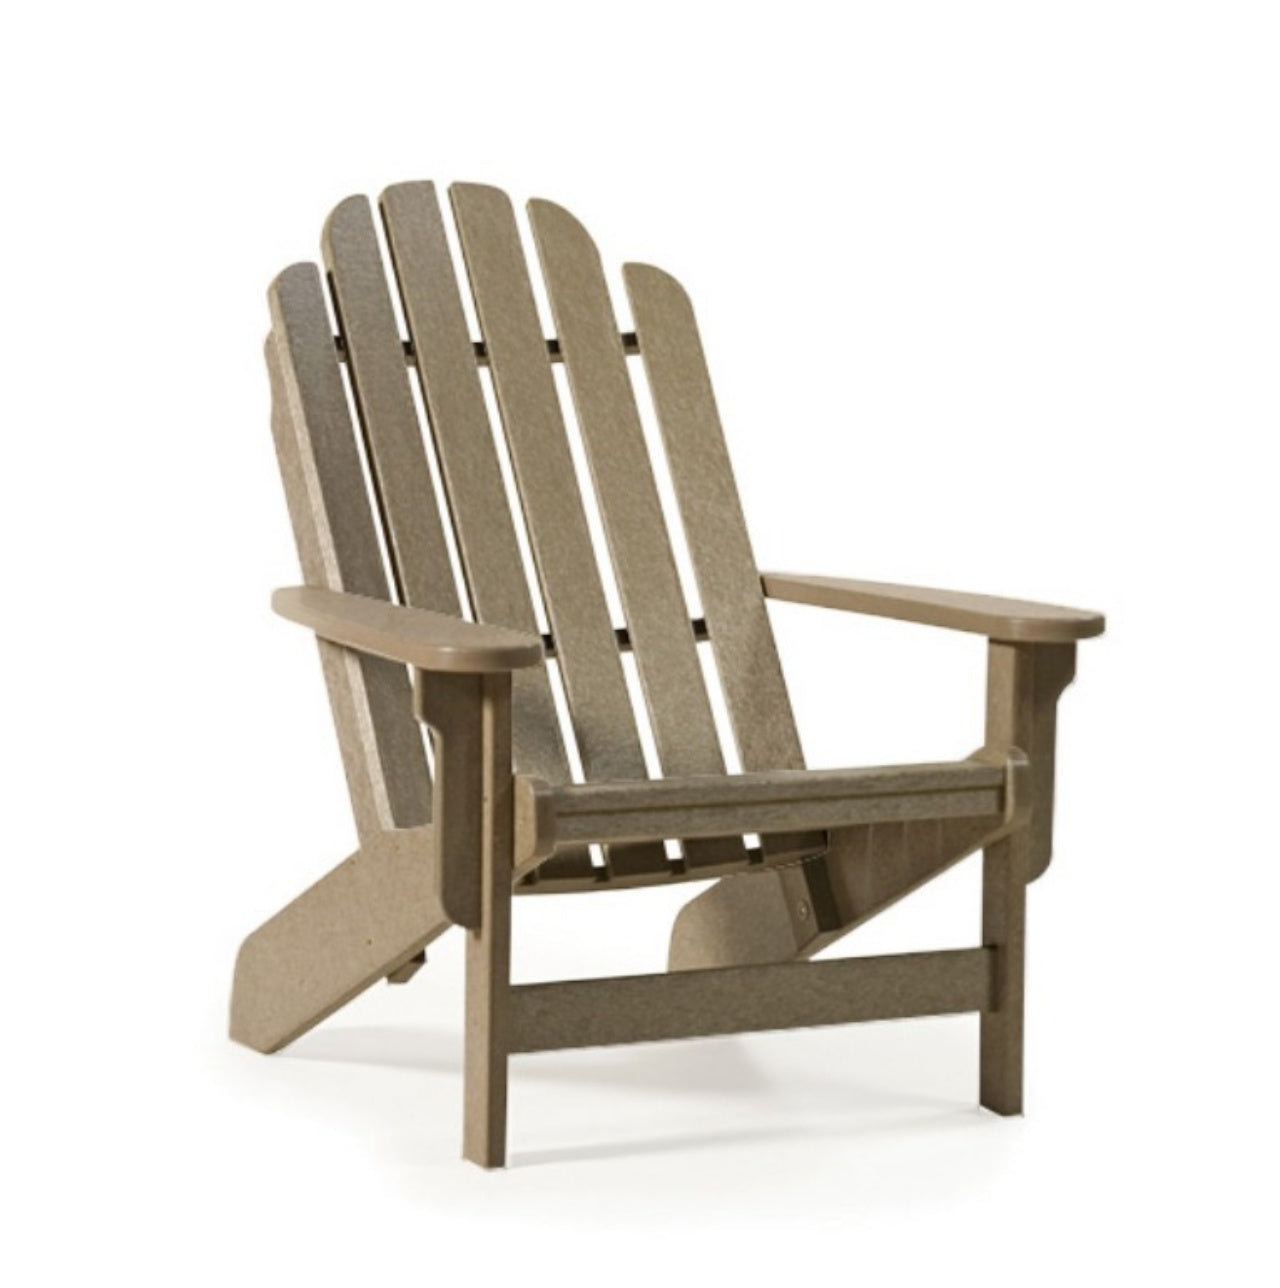 Shoreline Adirondack Chair - Quick Ship - 6 colors